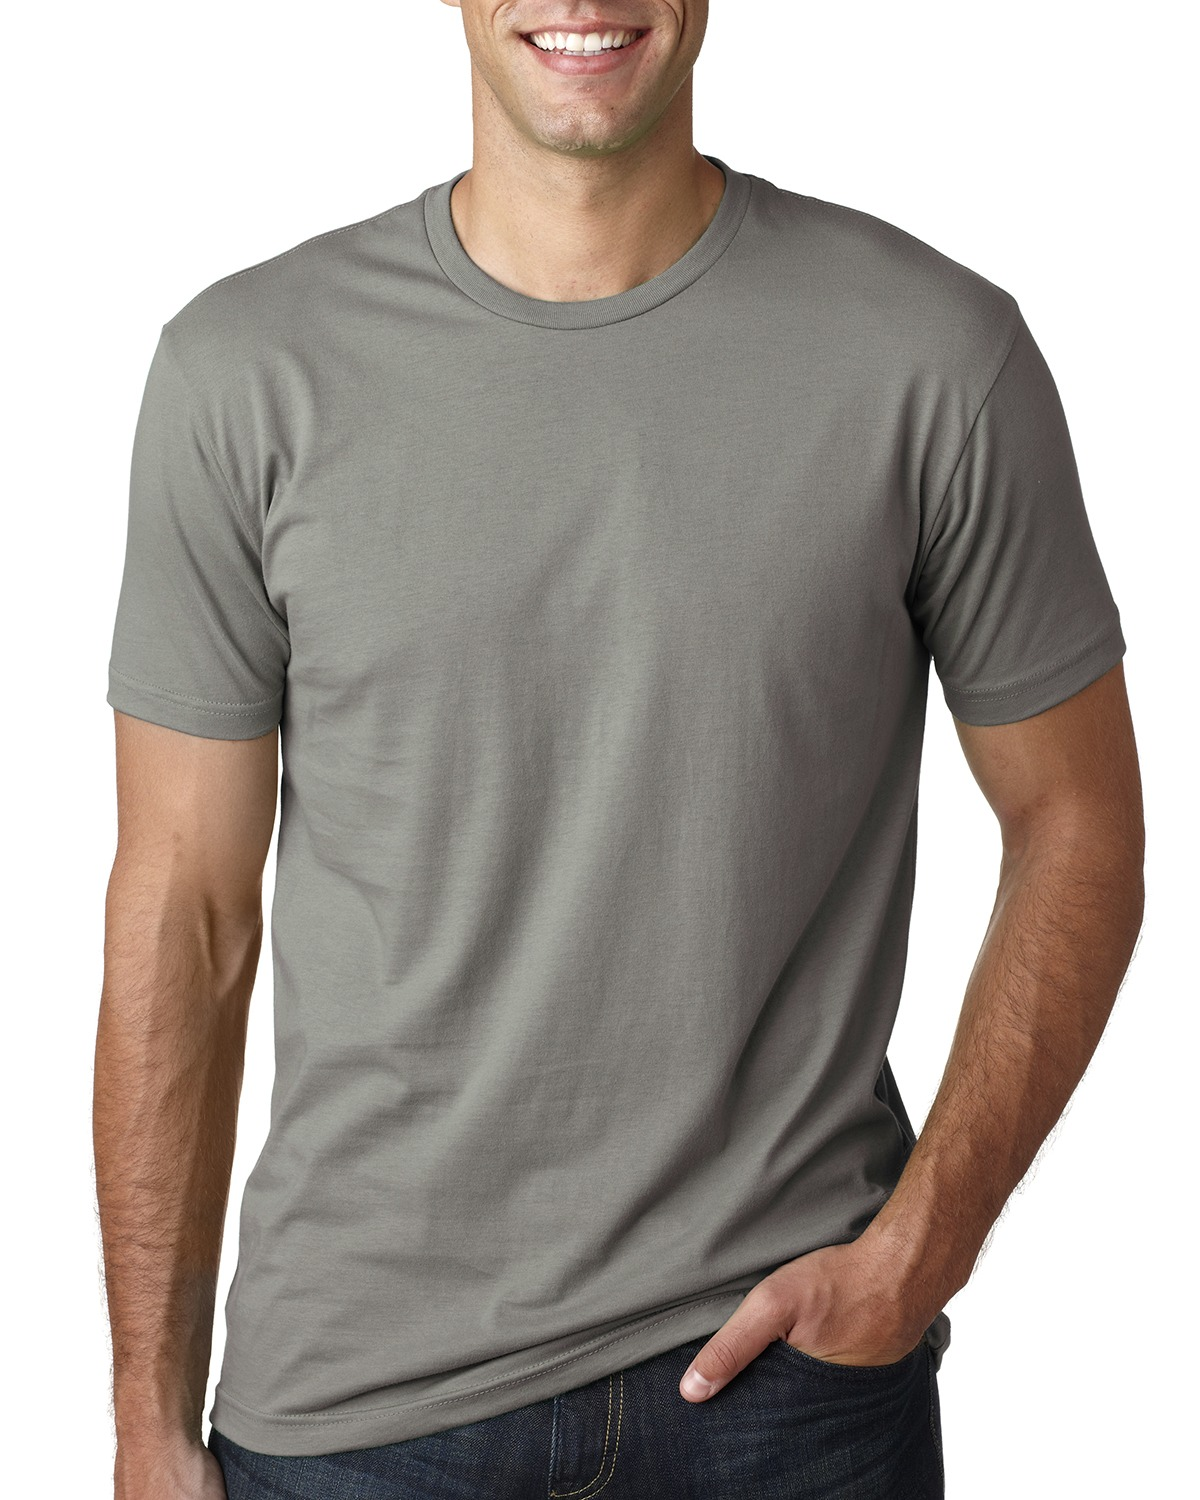 Branded Next Level Mens Cotton Crew - WARM GRAY - XL (Instant Saving 5% & more)